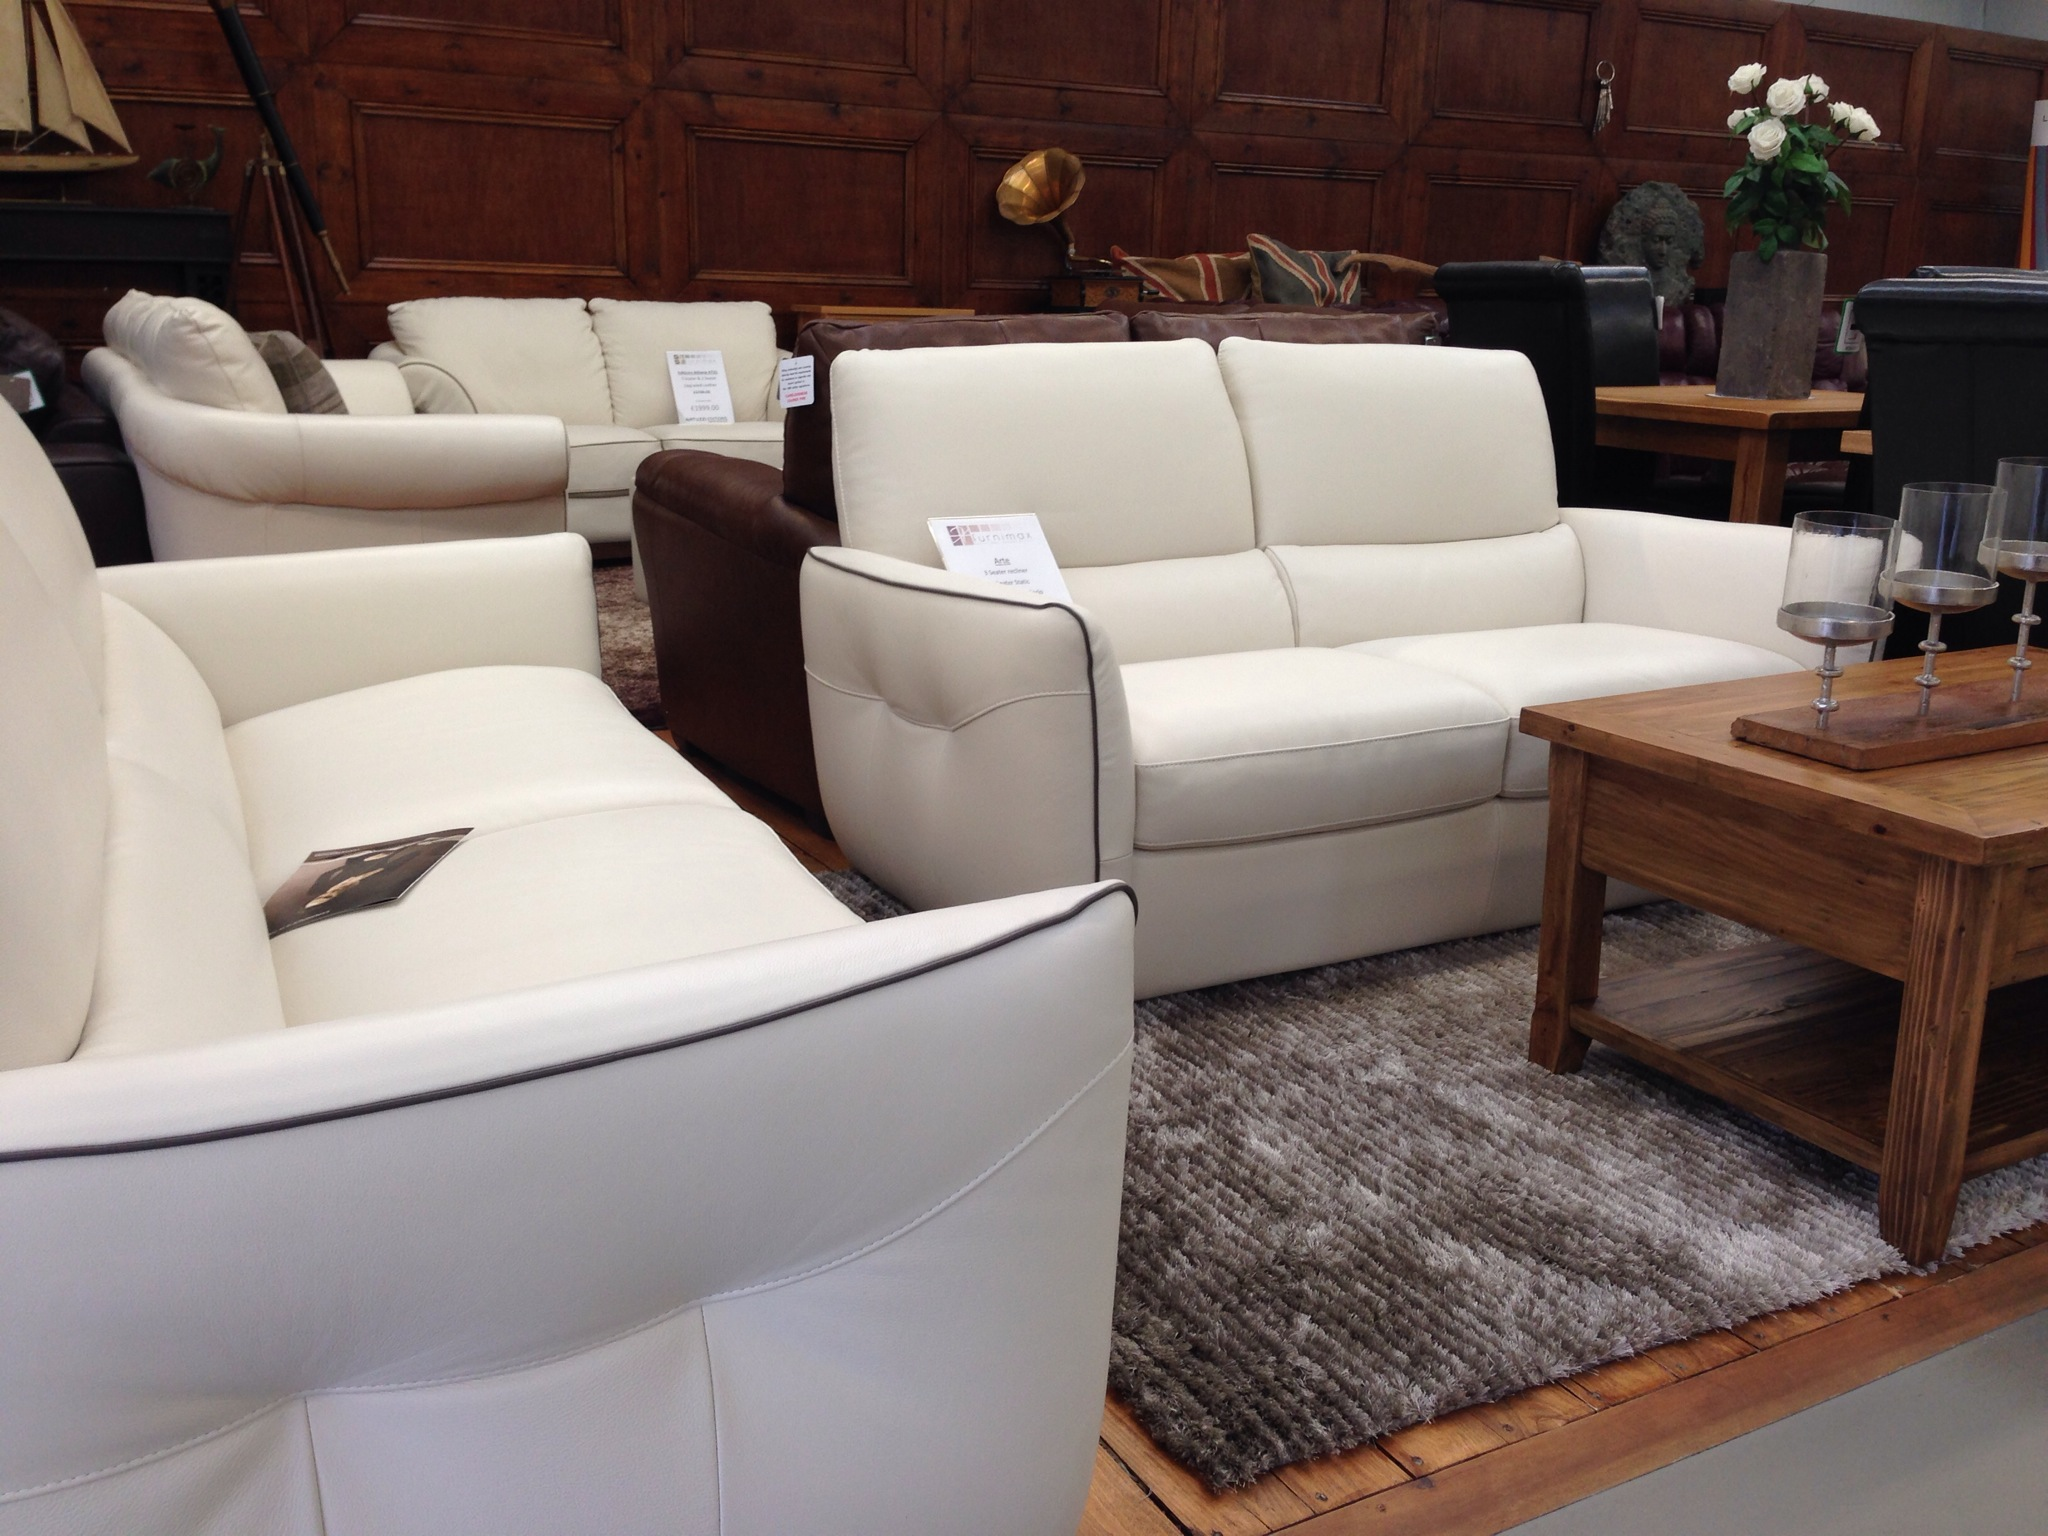 clearance sofa beds for sale purple sofas dfs natuzzi editions and italia stock